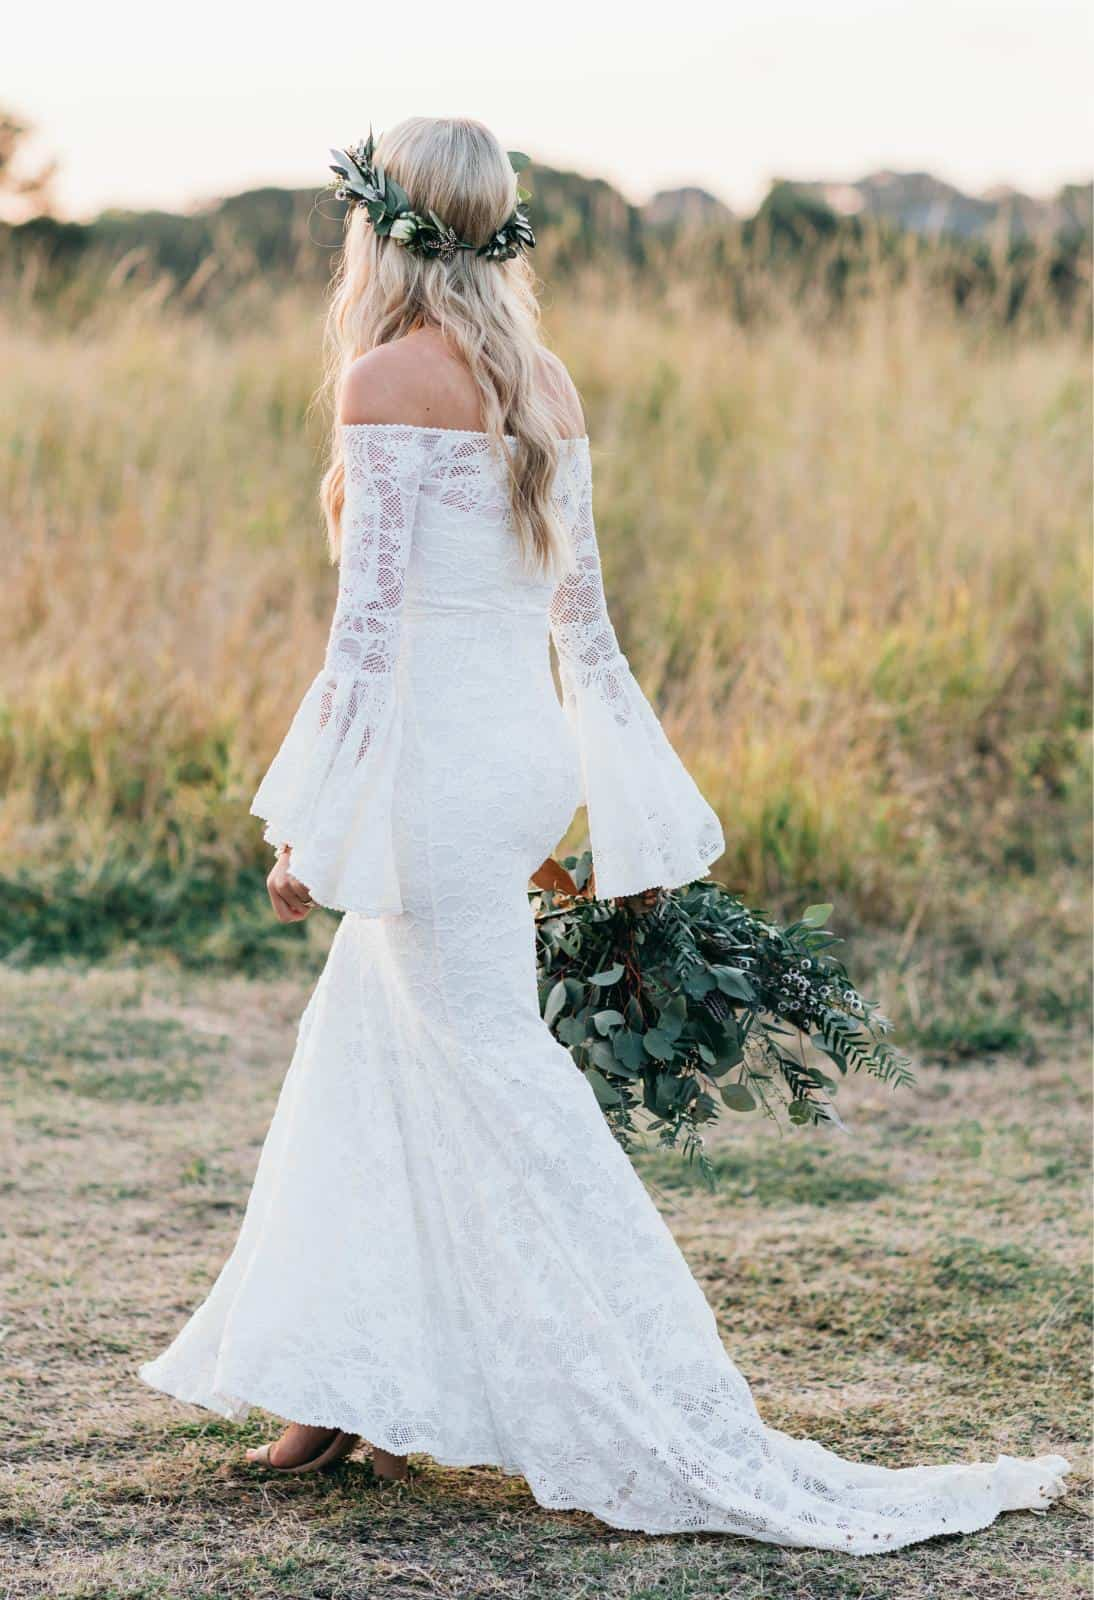 Long Sleeves Boho Wedding Dresses Inspiration French Lace Bridal Gowns Handmade by Grace Loves Lace Sloane